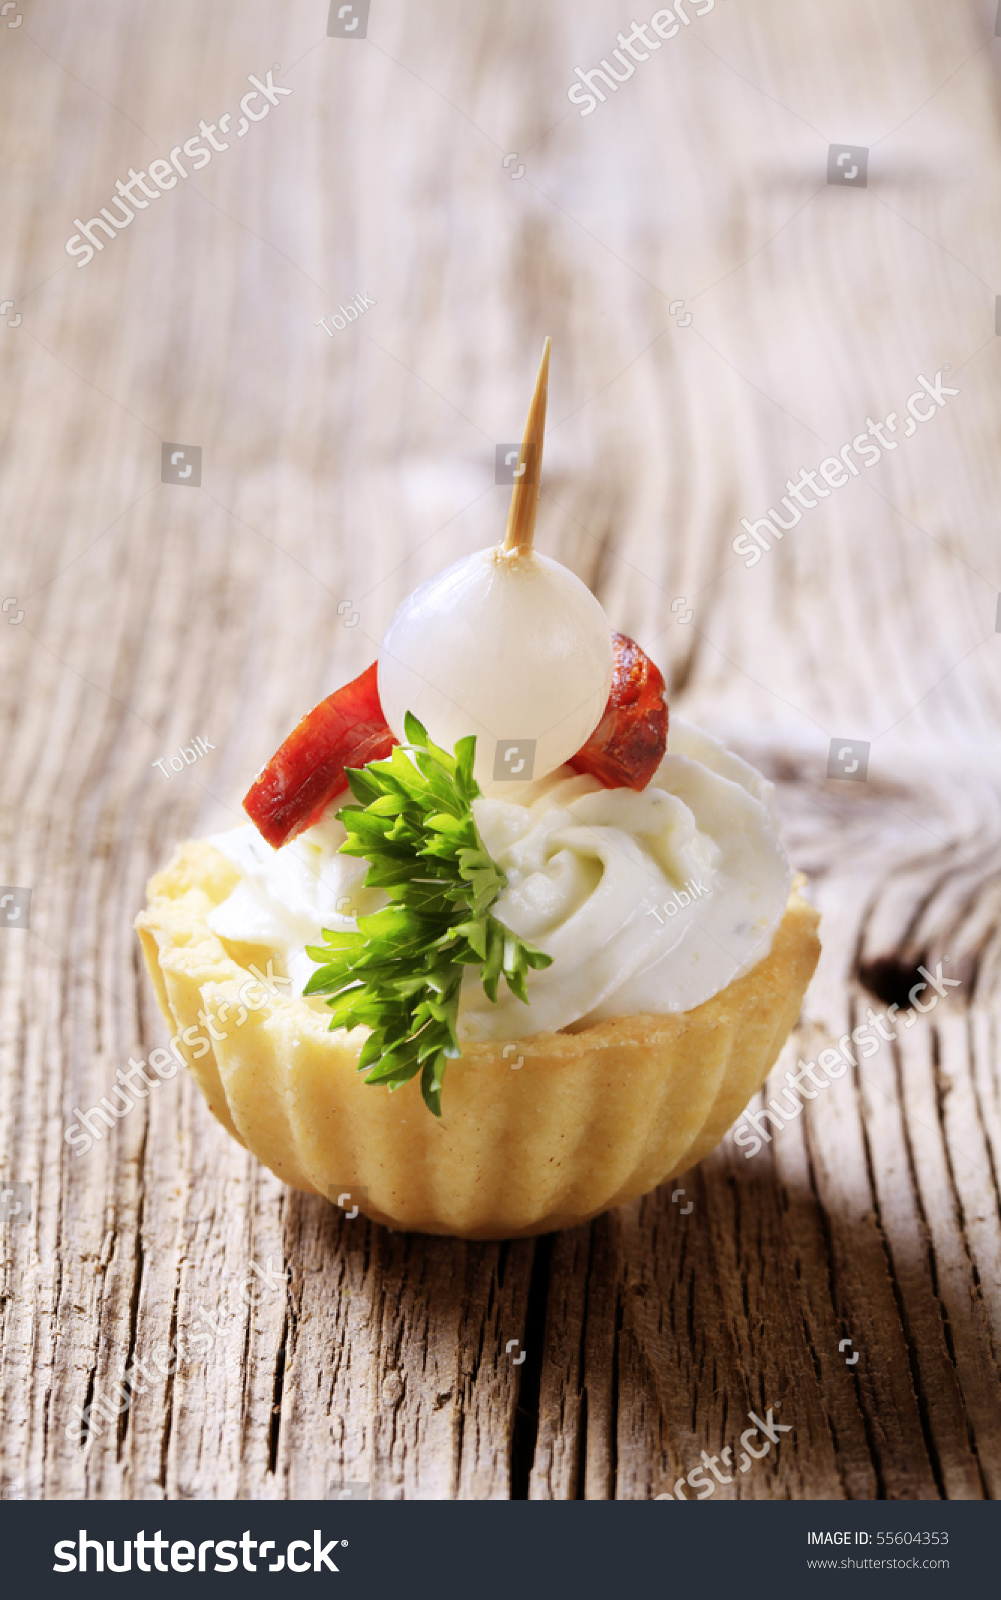 Canape tart shell with savory spread filling topped with for Canape pastry shells